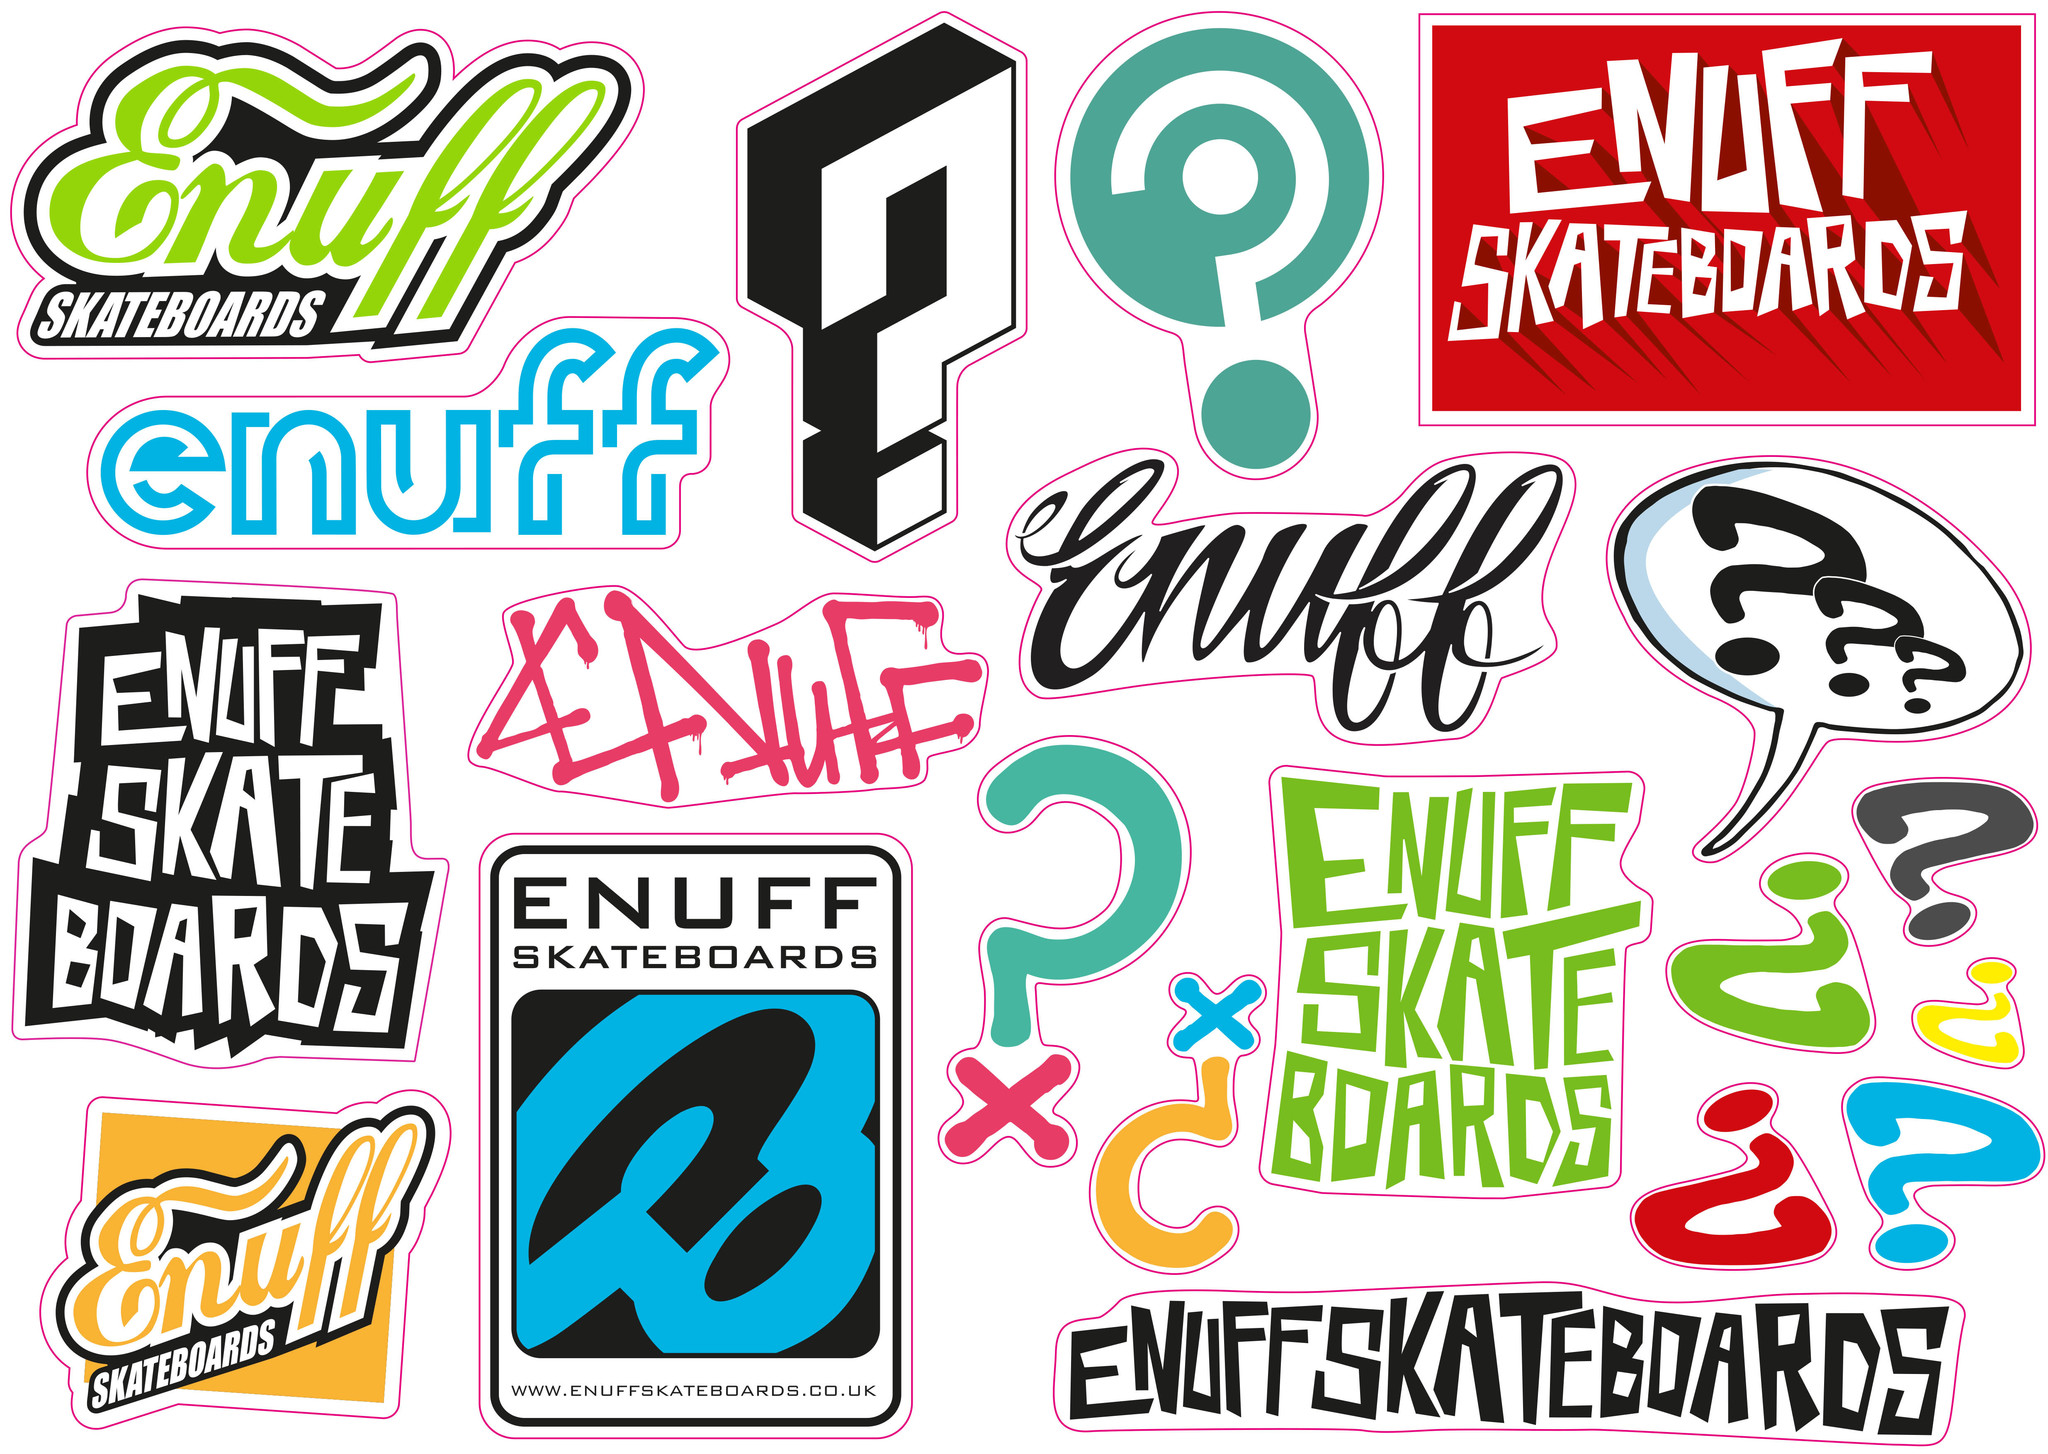 ENUFF SKATEBOARDS ENUFF ICON CON SKATEBOARD, GRÜN